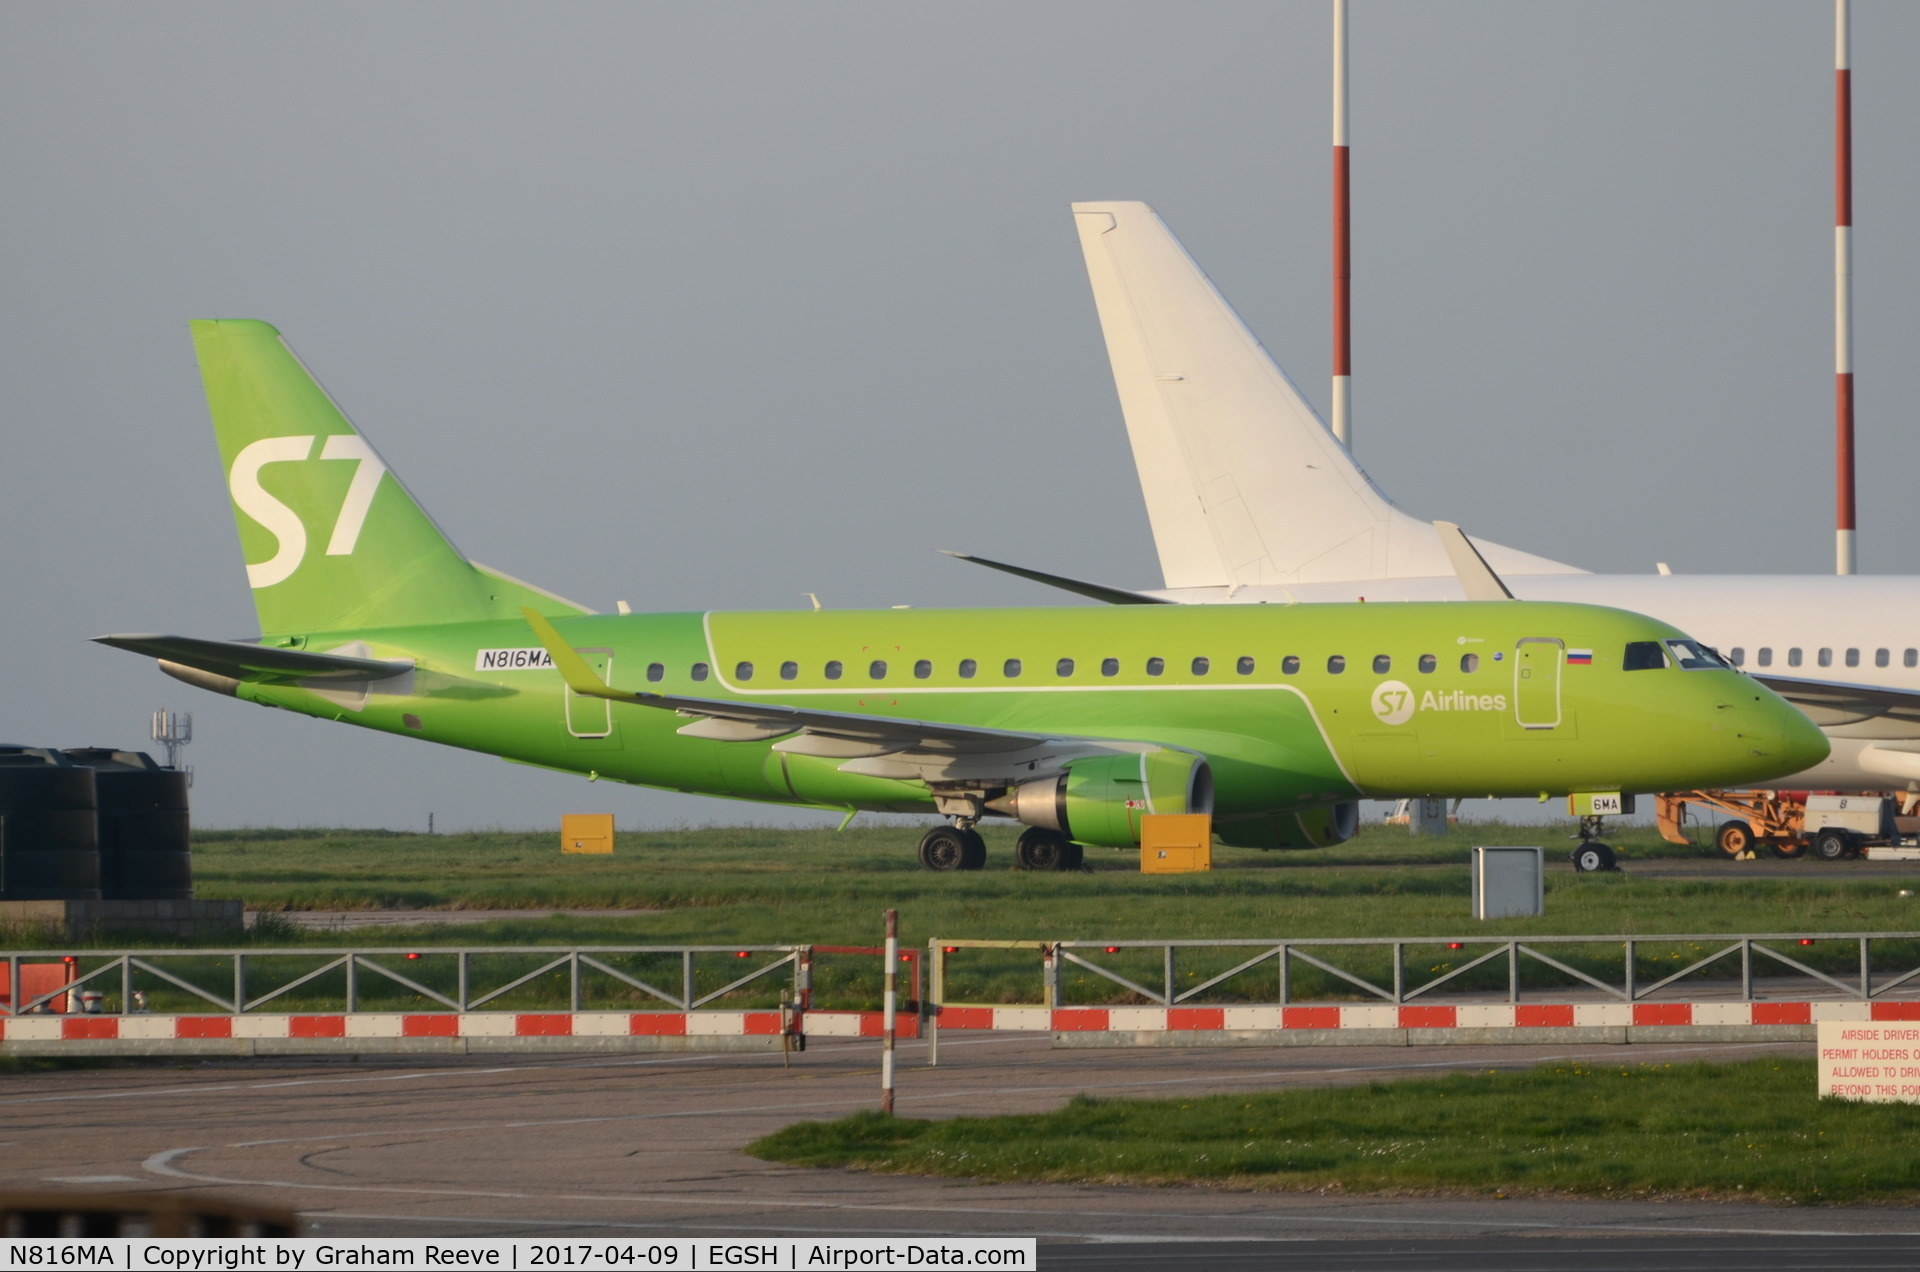 N816MA, 2004 Embraer 170SU (ERJ-170-100SU) C/N 17000037, Just out of paint and in S7 colour scheme.